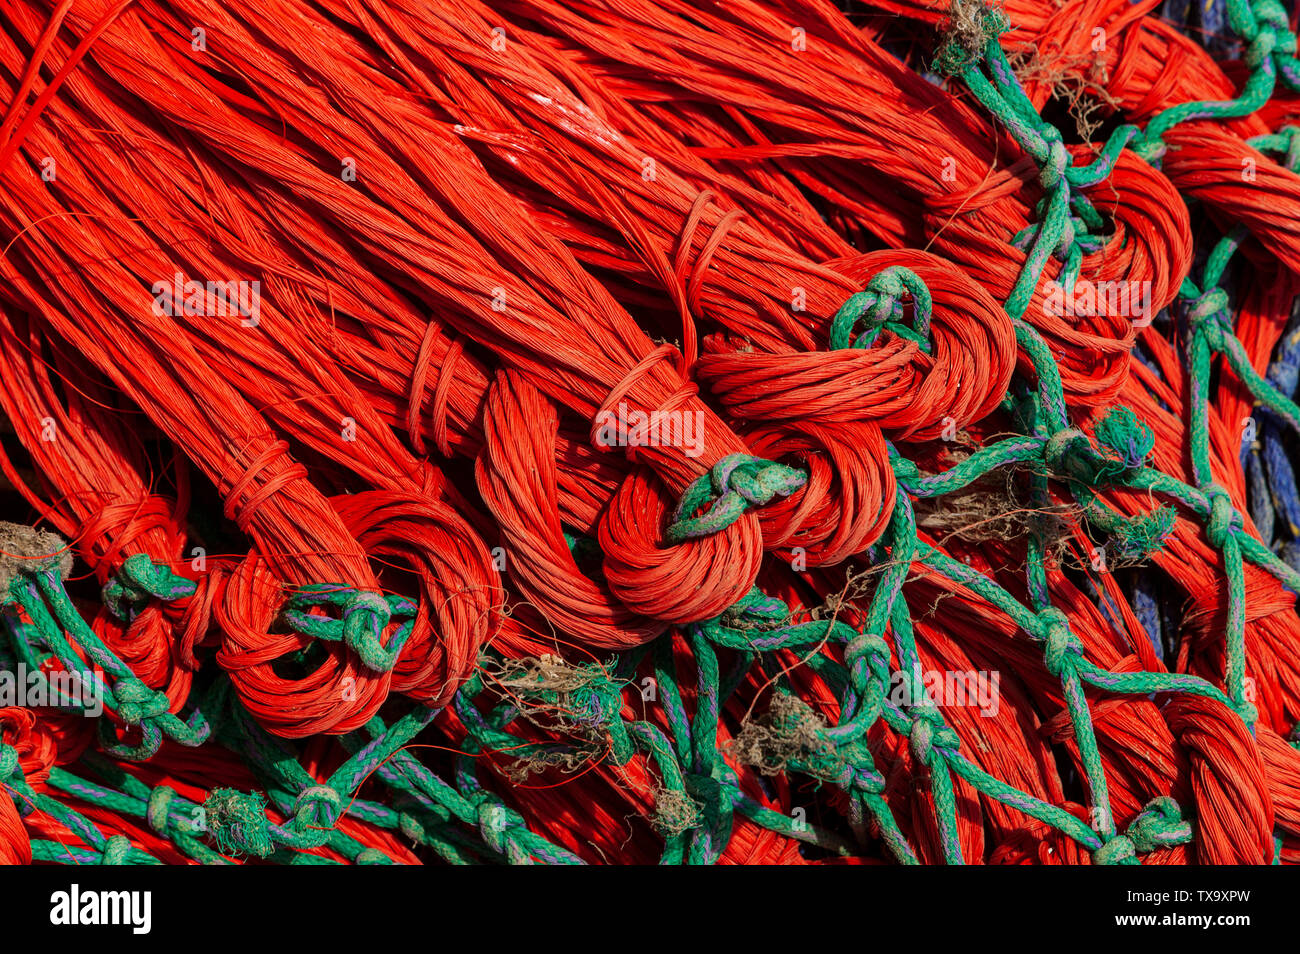 colourful-orange-and-green-fishing-nets-drying-in-the-harbour-of-rye-east-sussex-england-united-kingdom-europe-TX9XPW.jpg